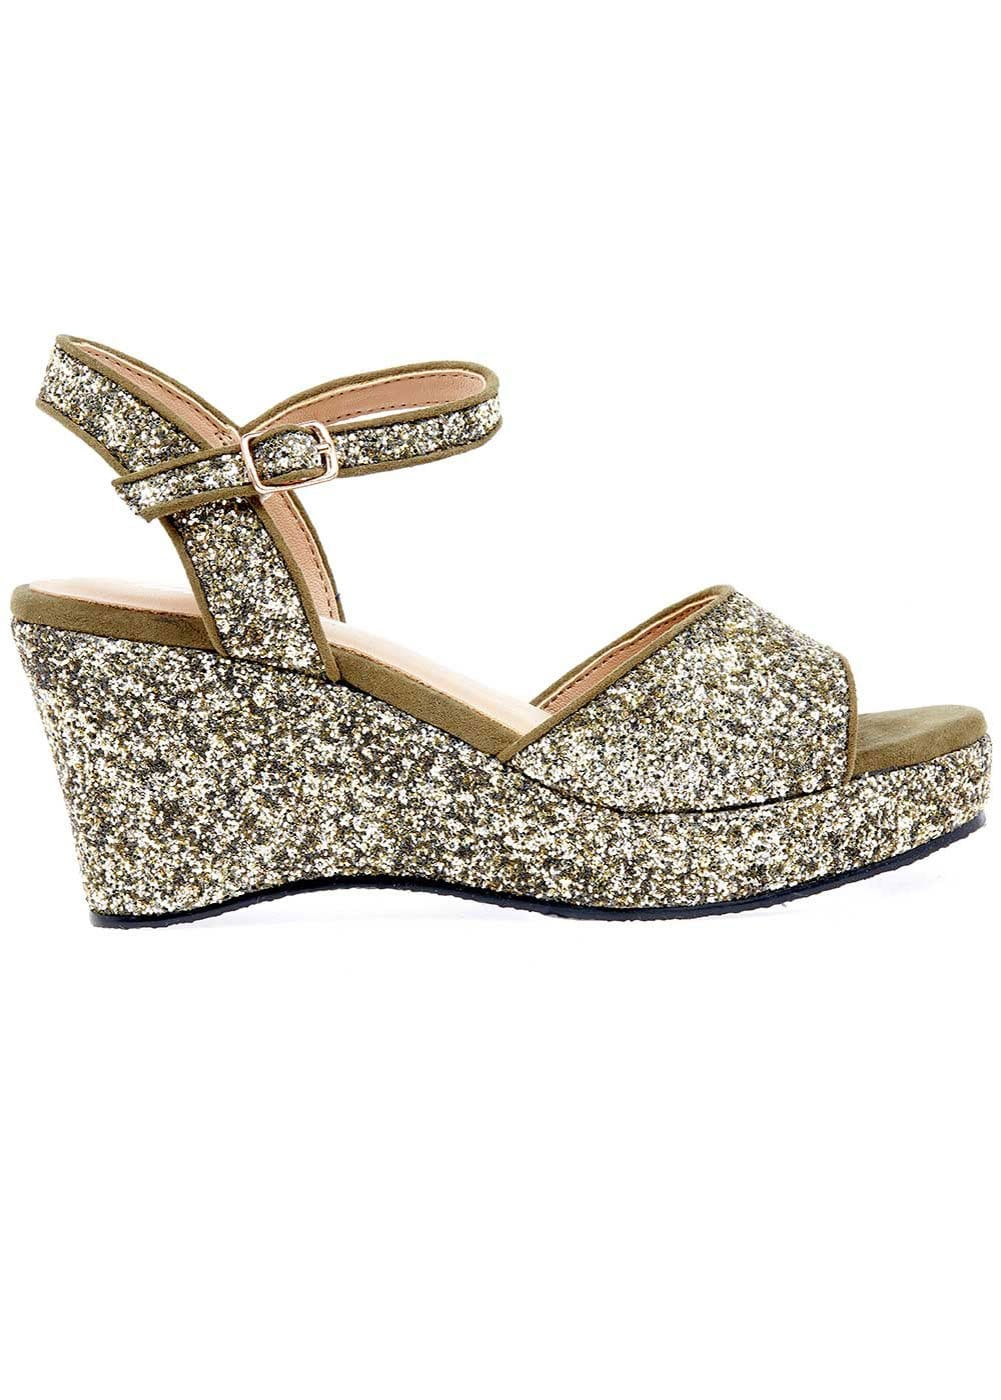 Teenzshop Girls Gold Wedge Party Sandal